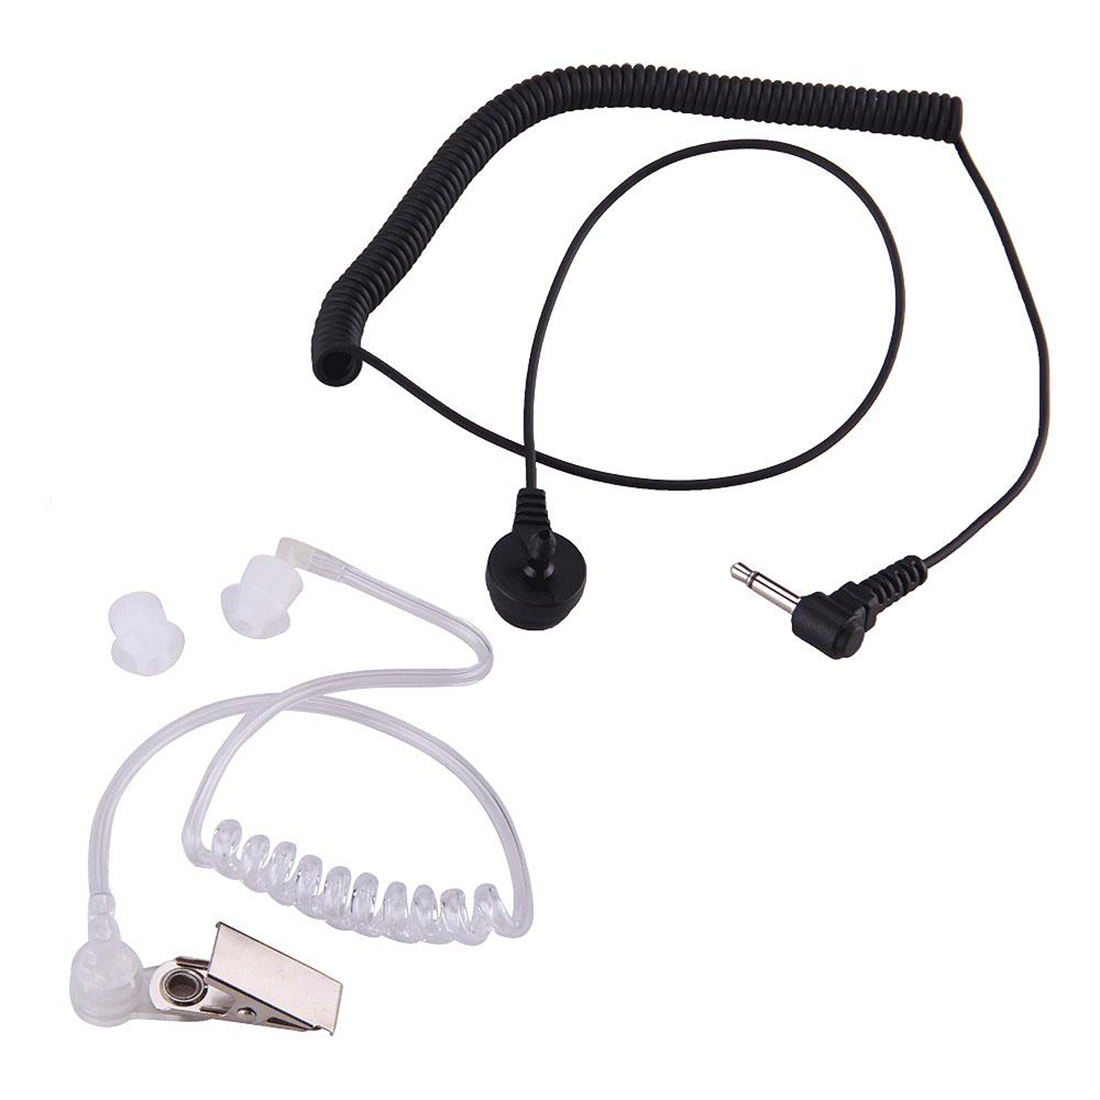 Etmakit 2017 New Fashion 3.5mm Covert Mic Acoustic Tube Earpiece Earphone Headset 1 PIN For Motorola ICOM Radio